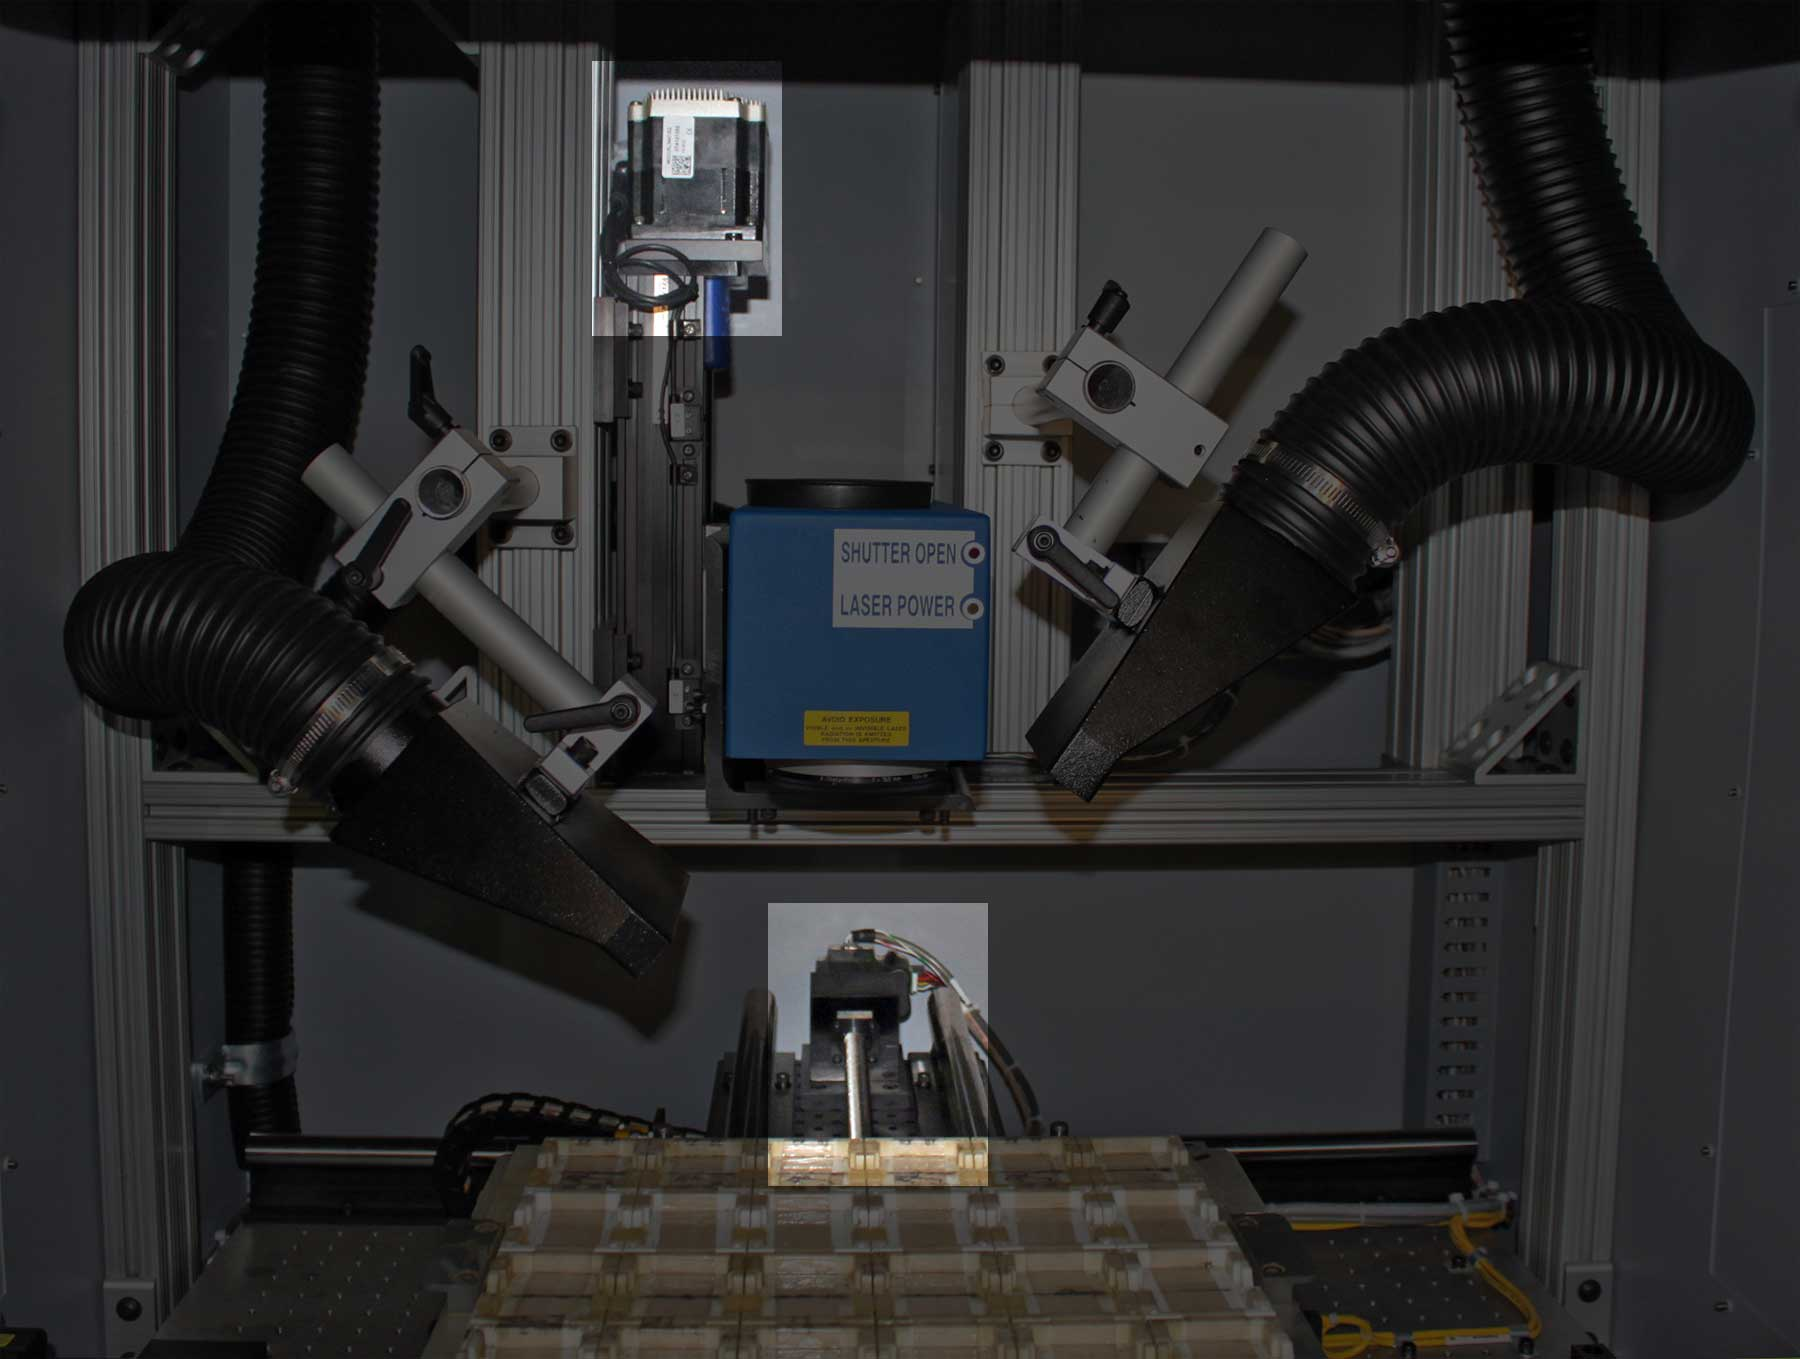 Intelligent rotary and linear MDrive products (circled in red) are mounted directly into the laser marking machine with stored programs controlling the system's motion.